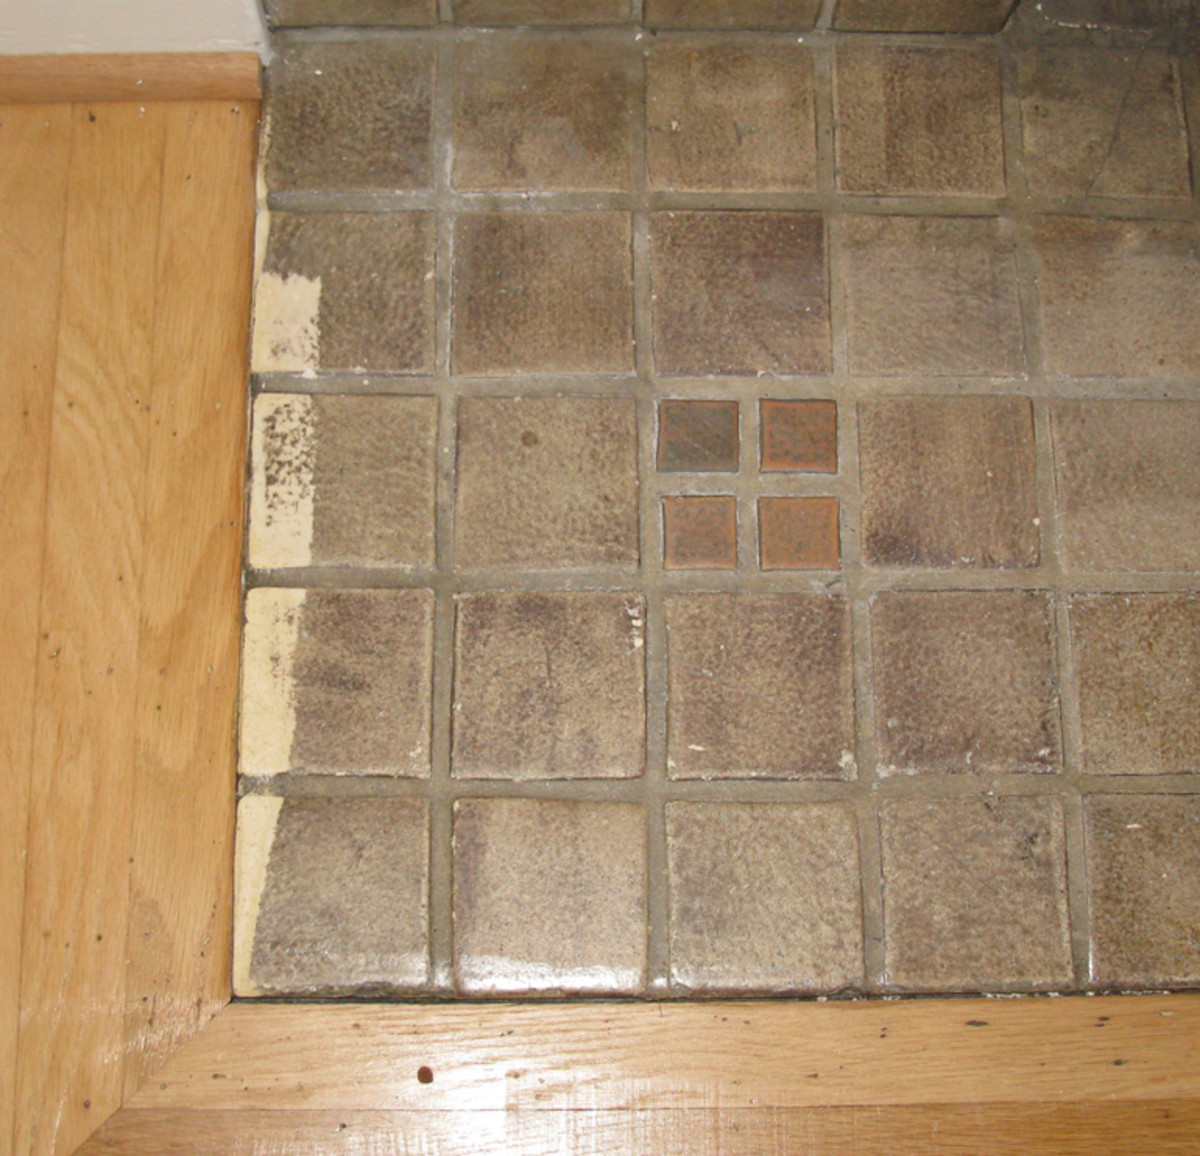 For hearth tiles damaged by a floor sander, a little patching was followed by meticulous painting and blending.